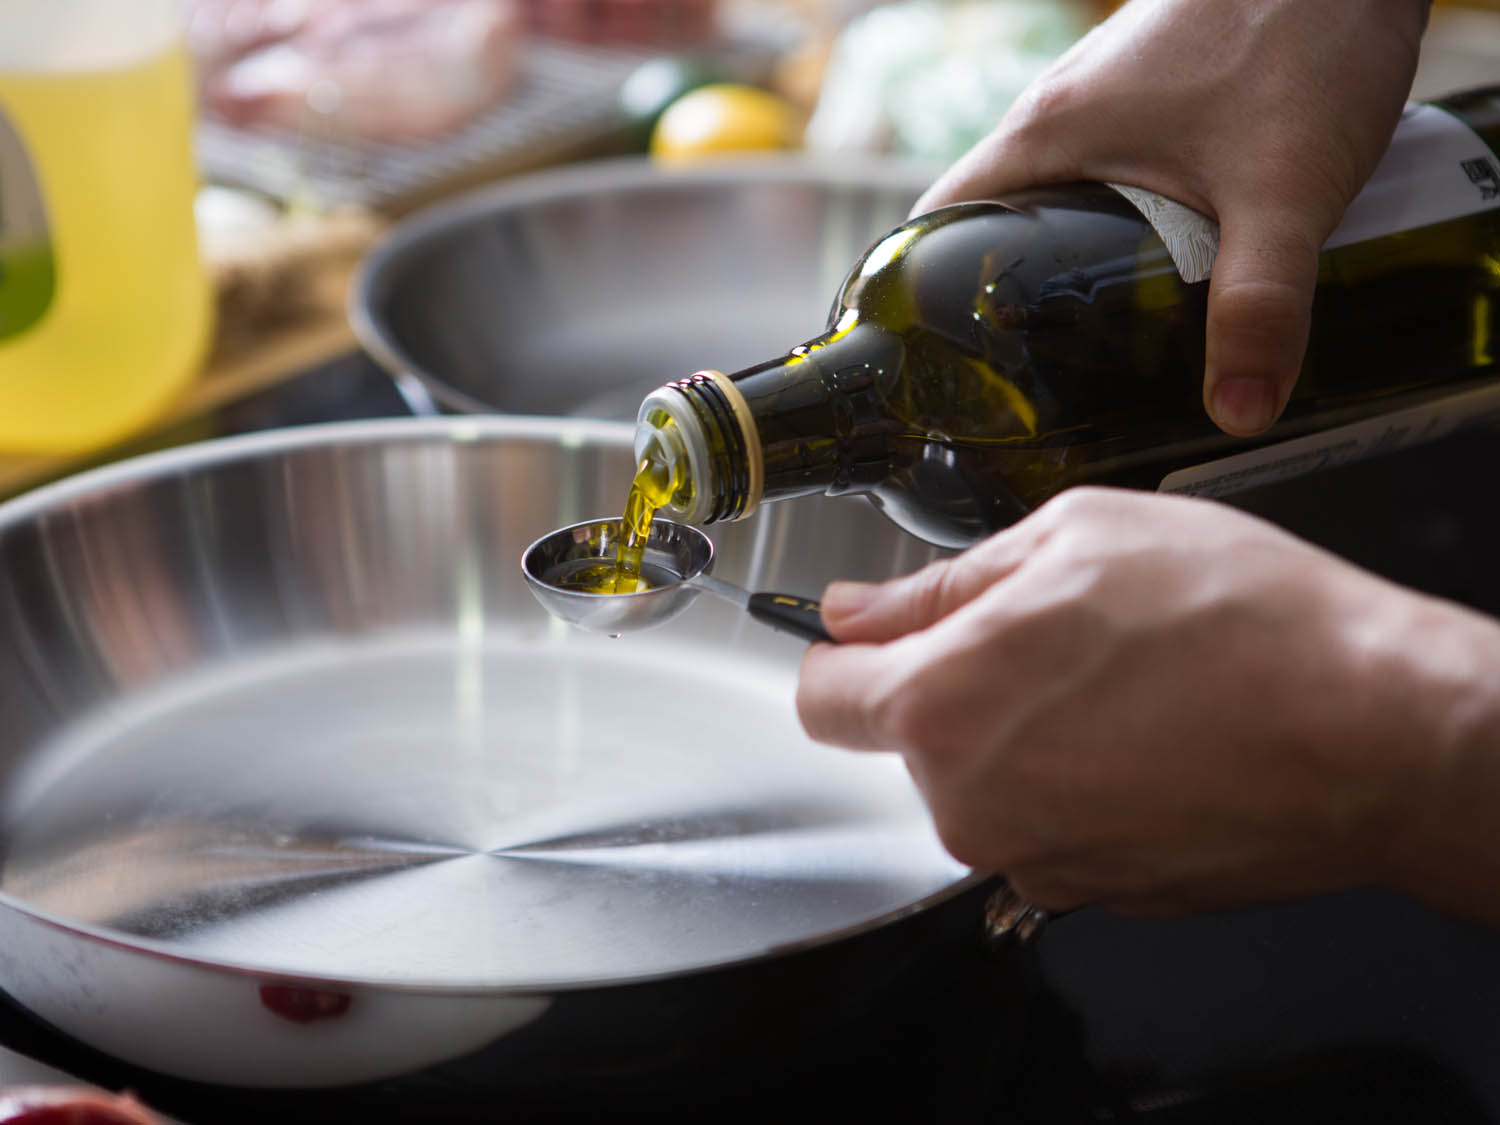 Frying with olive oil and heart disease